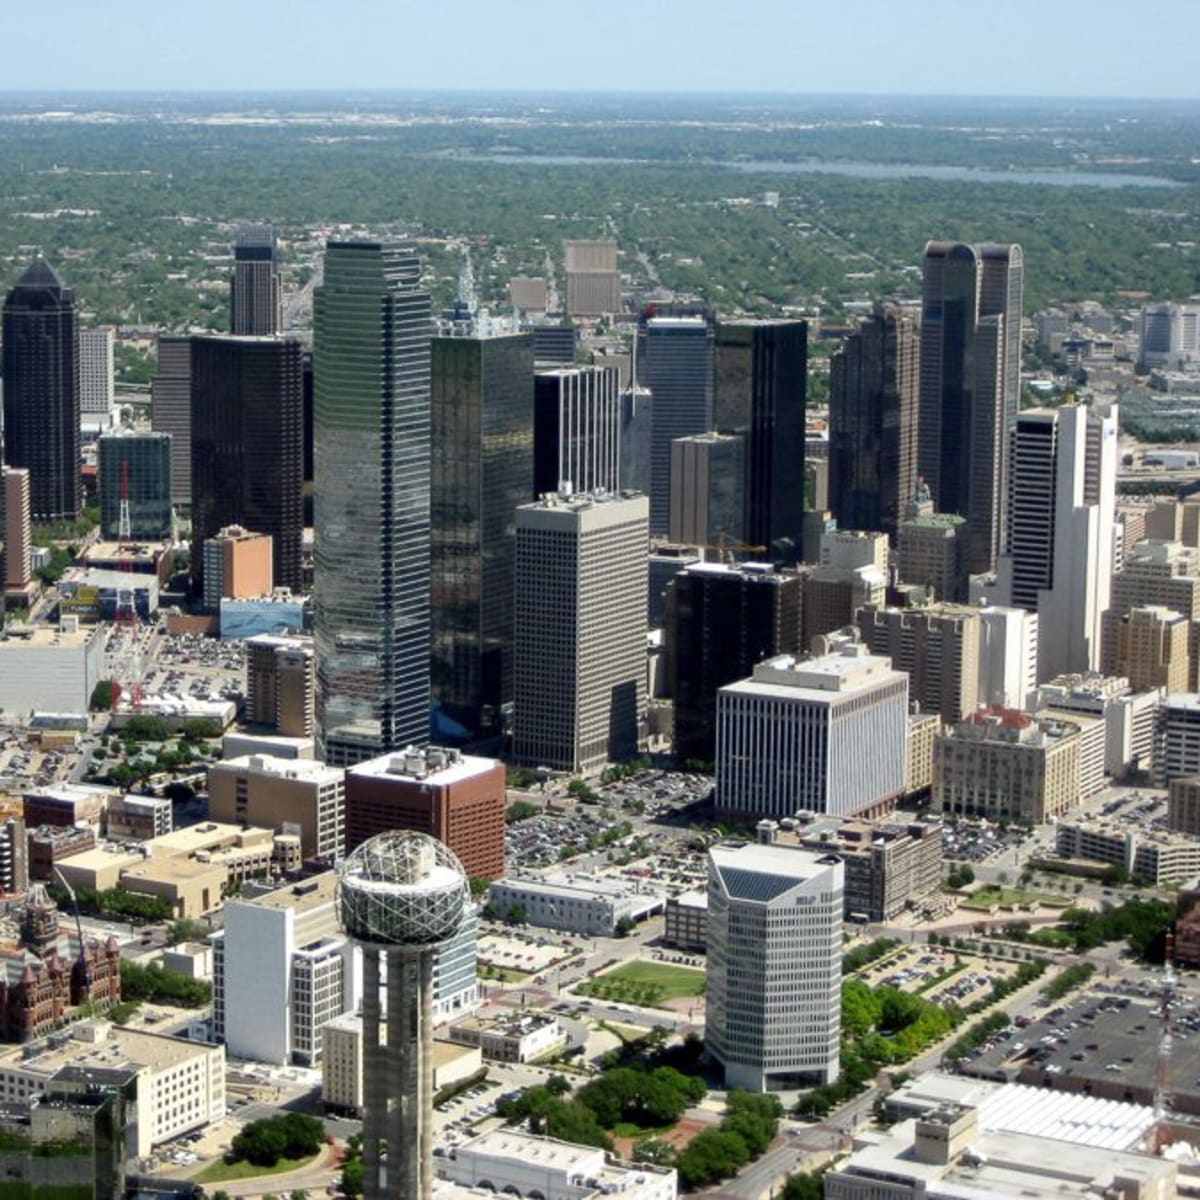 Dallas skyline downtown during day